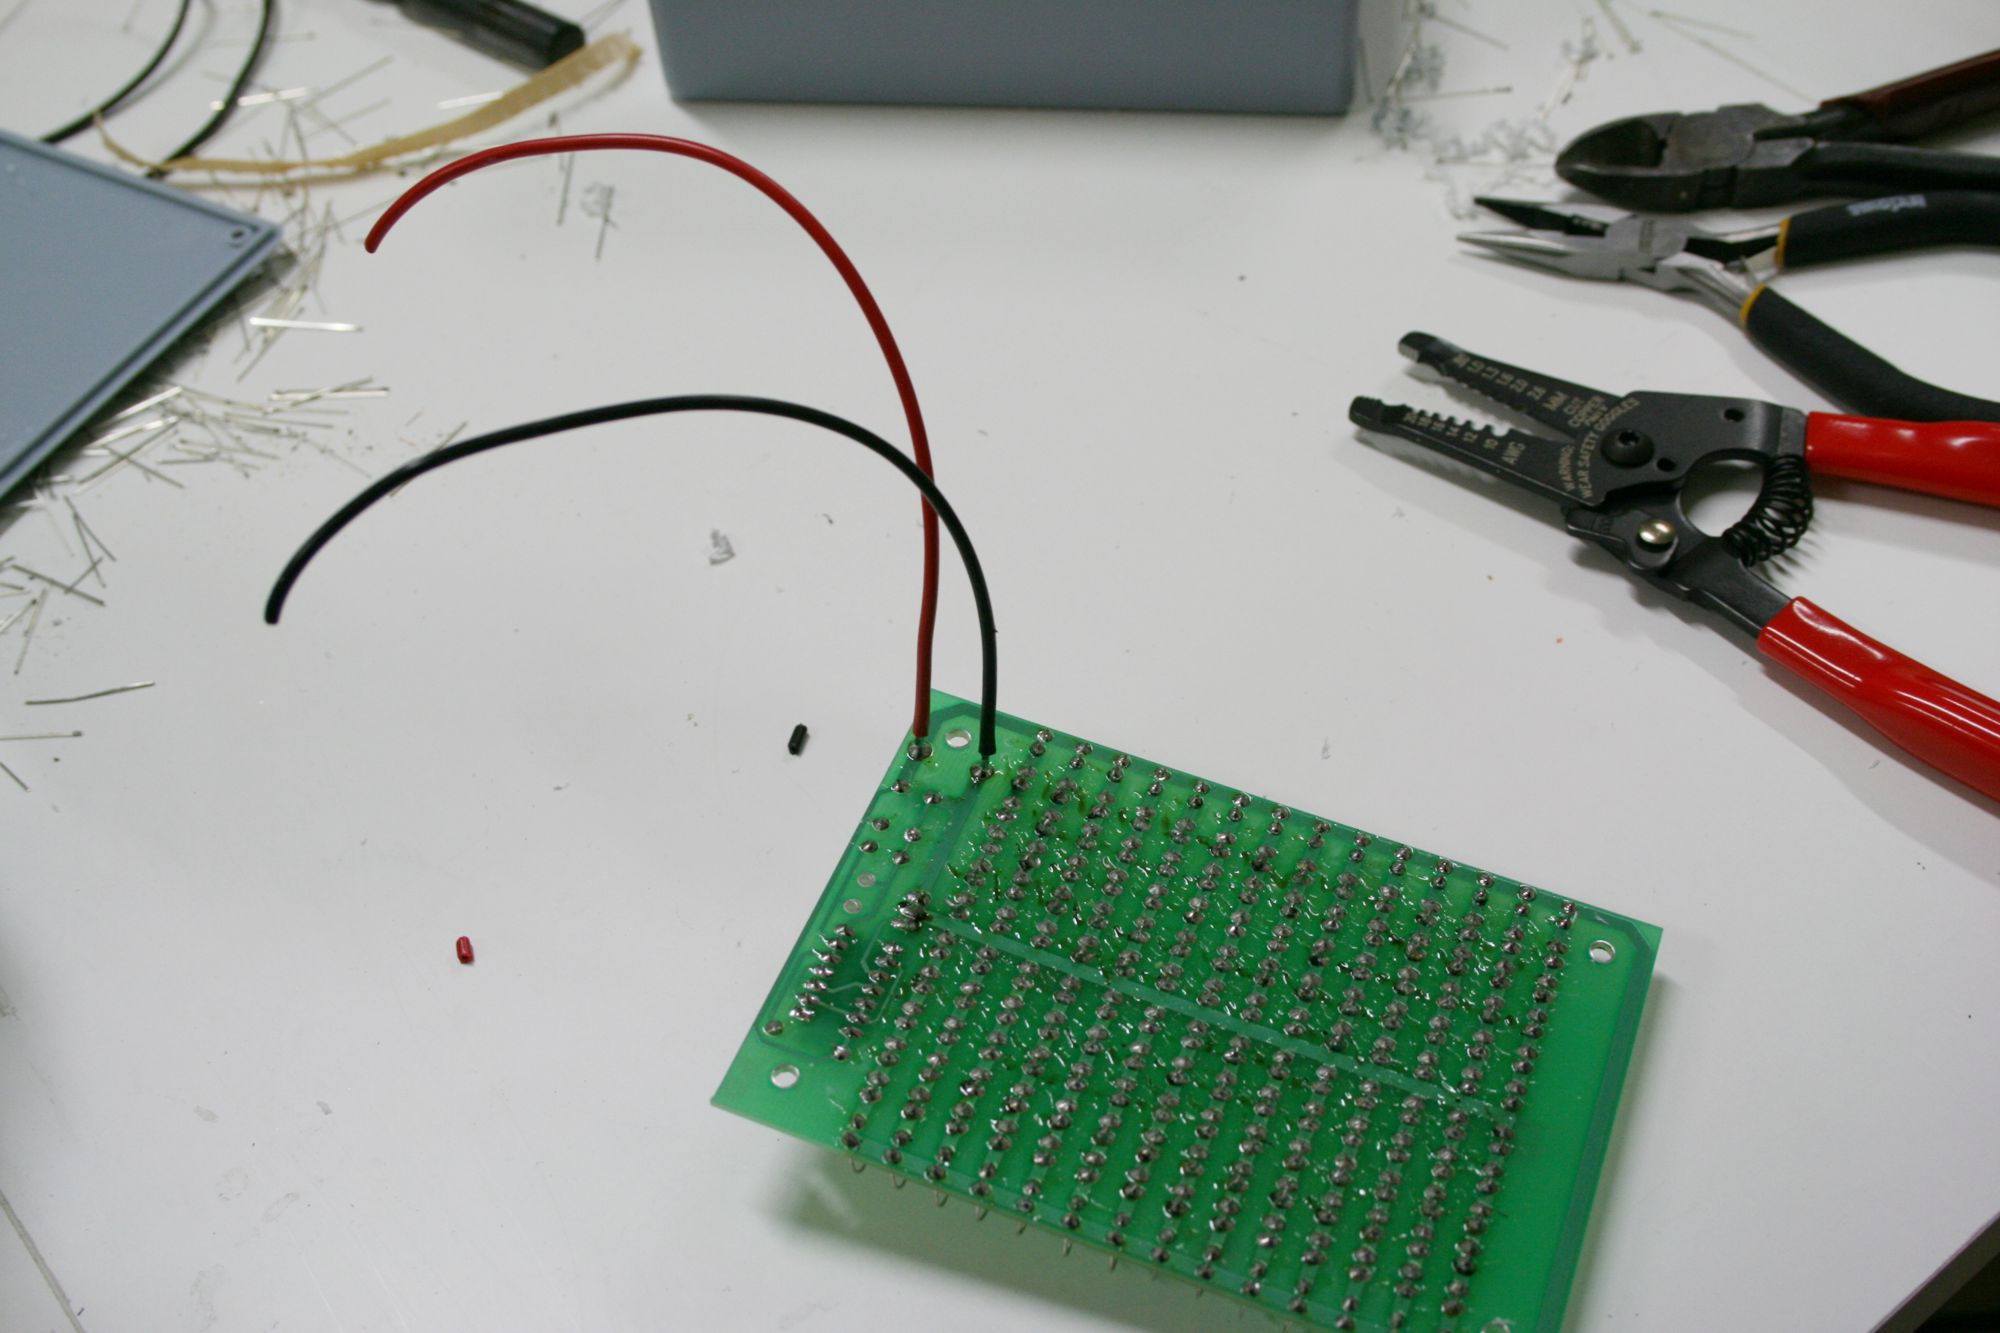 How to assemble your own 140 LED Infrared Light Source (part 2)